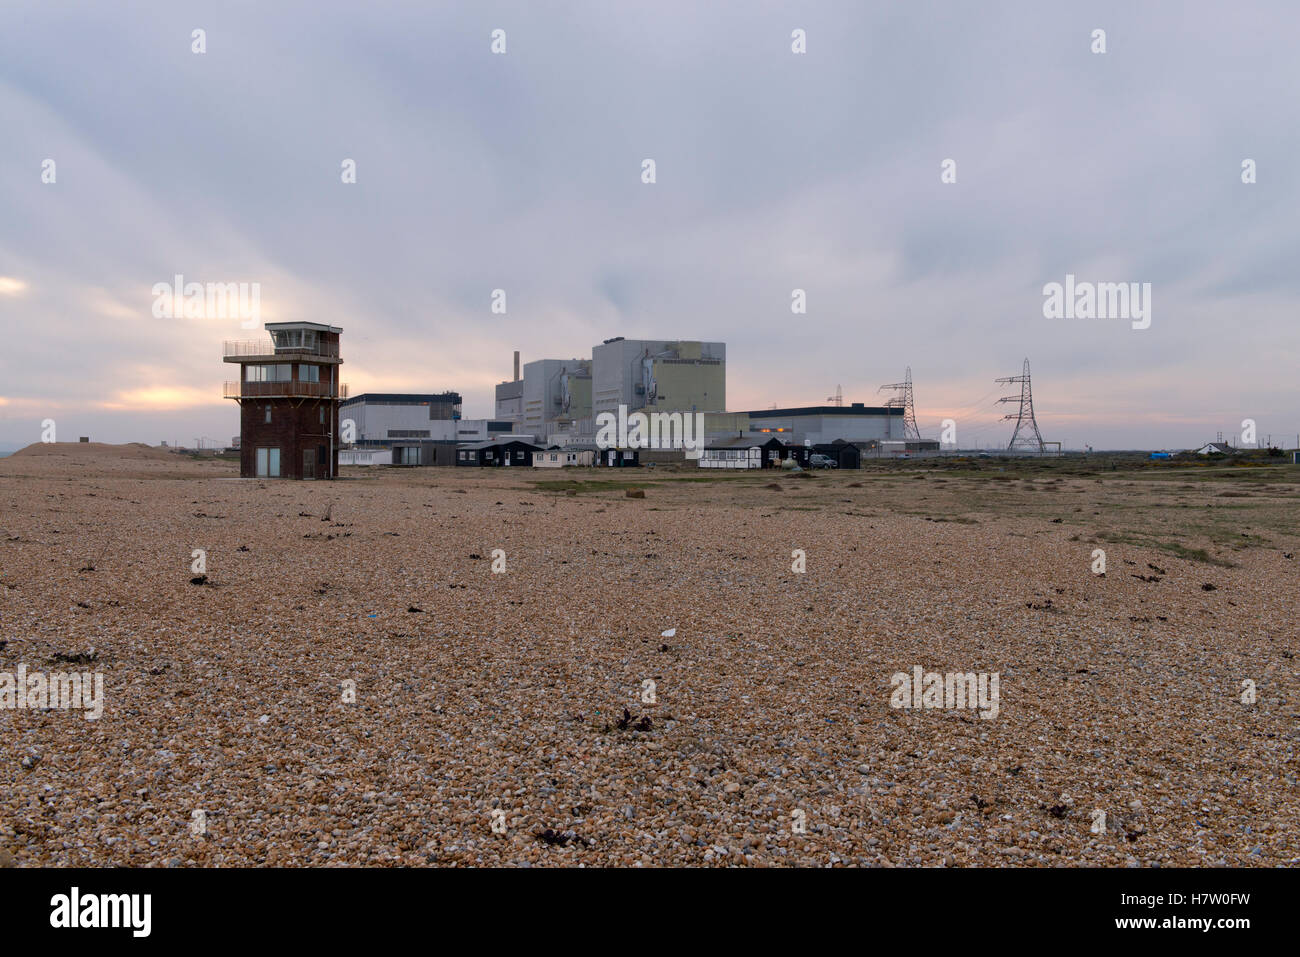 Dungeness nuclear power station - Stock Image